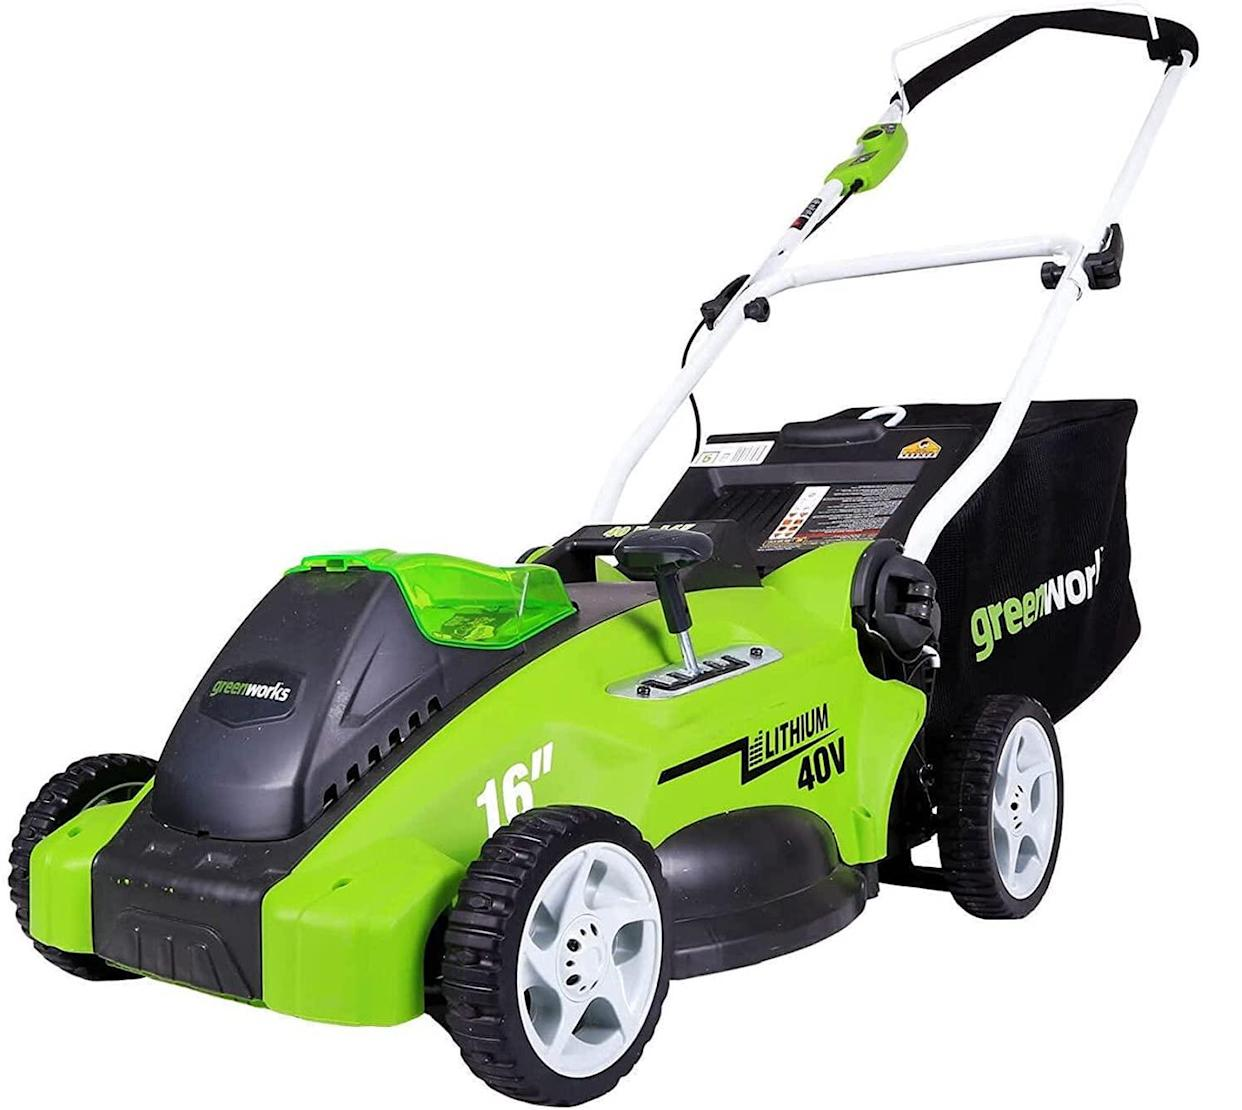 Save $110 on this mower, today only! (Photo: Amazon)